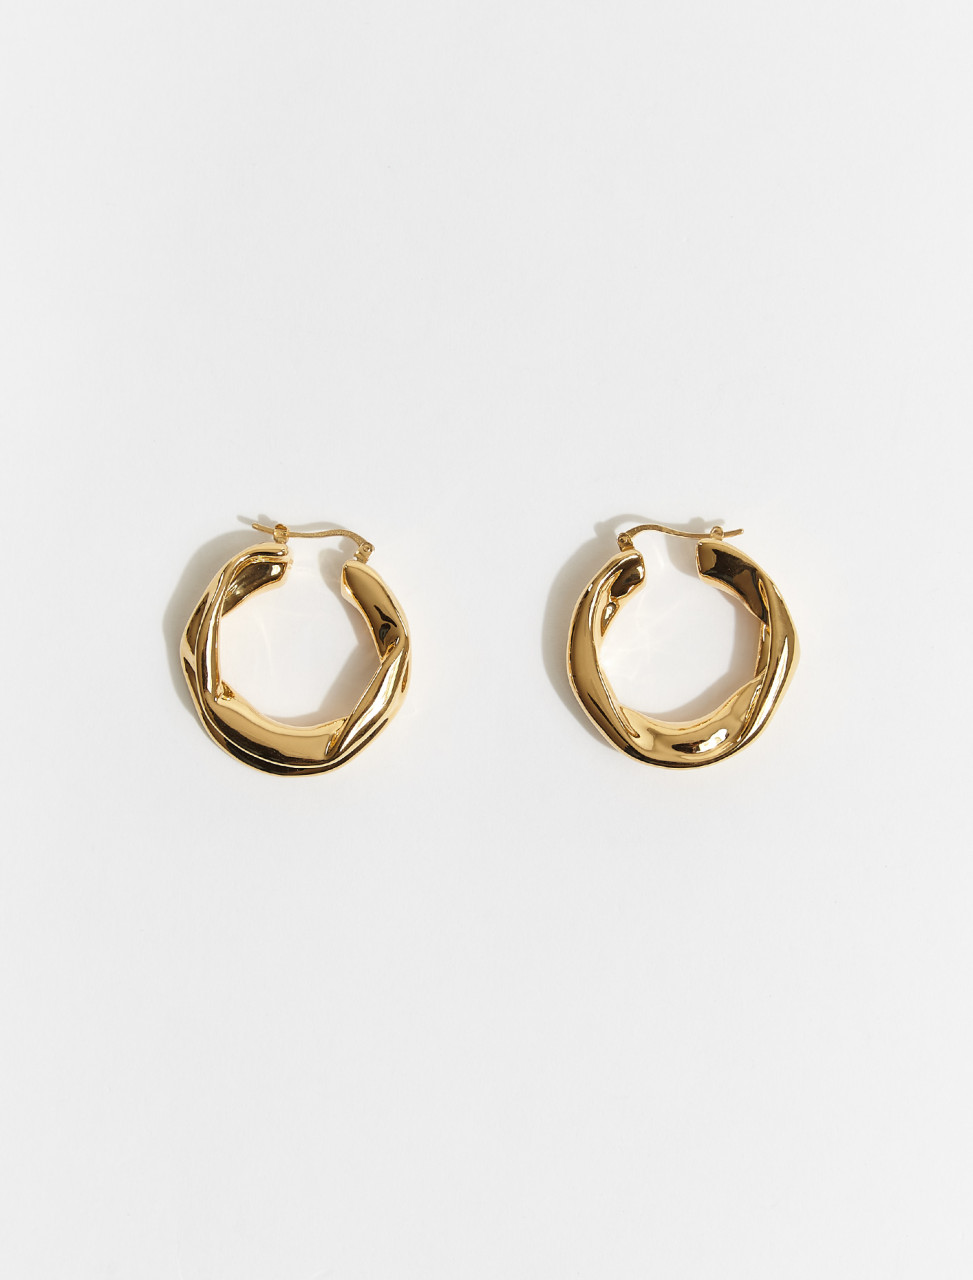 JSWS837161-WSS79009-712 JIL SANDER MELTING EARRINGS IN GOLD